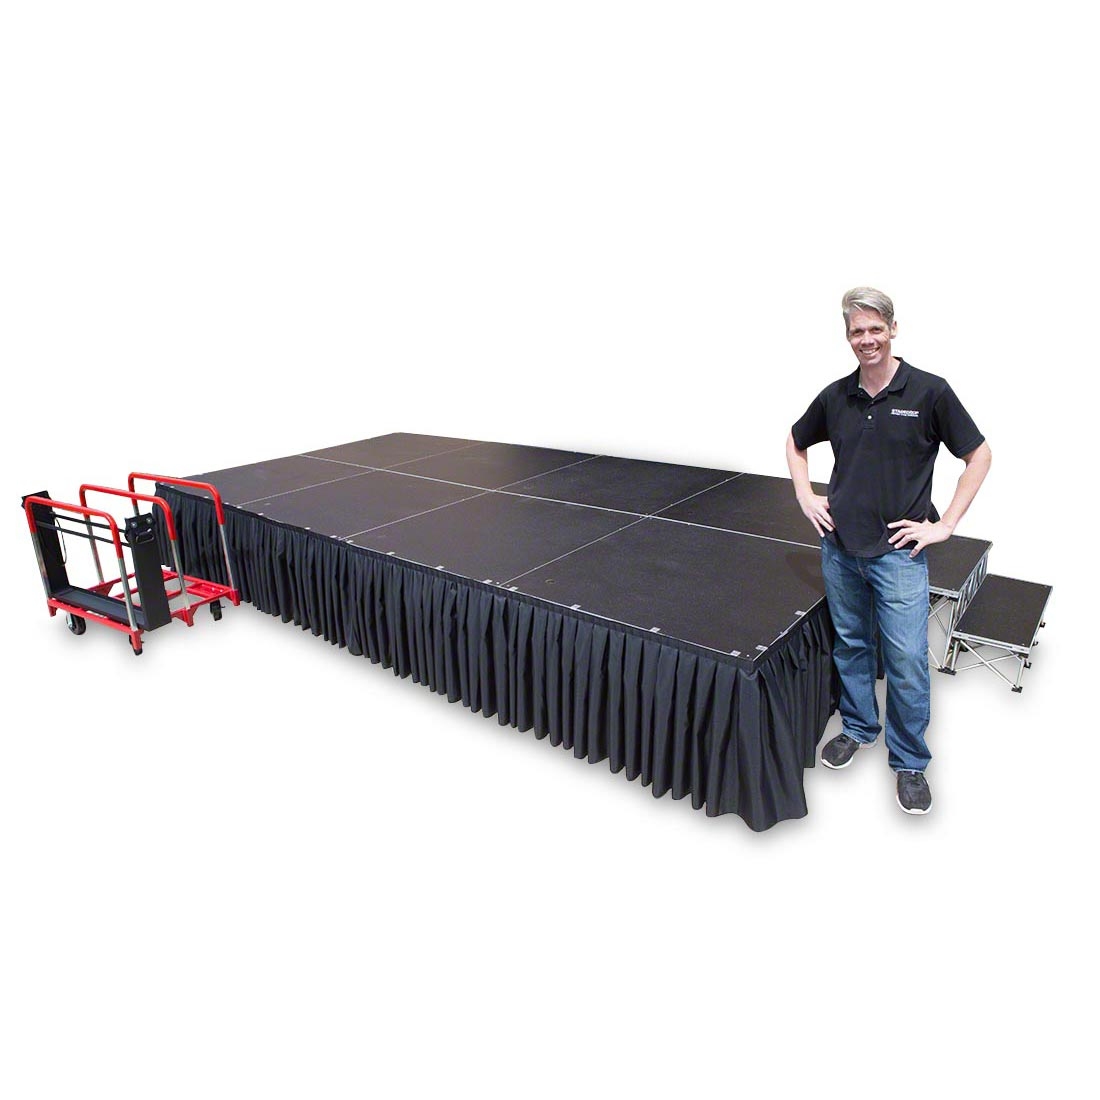 TotalPackage™ Lightweight Portable Stage Kit, 8'x16' TPL816